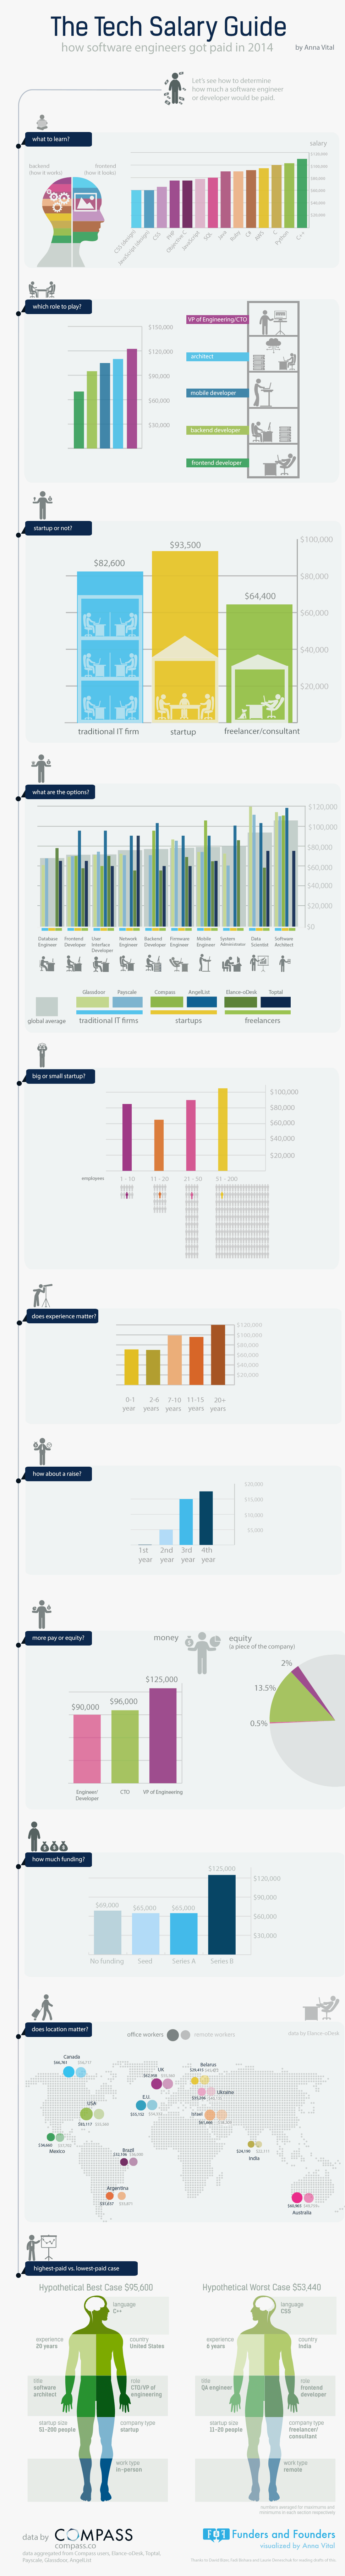 software engineer salary 2014 - infographic